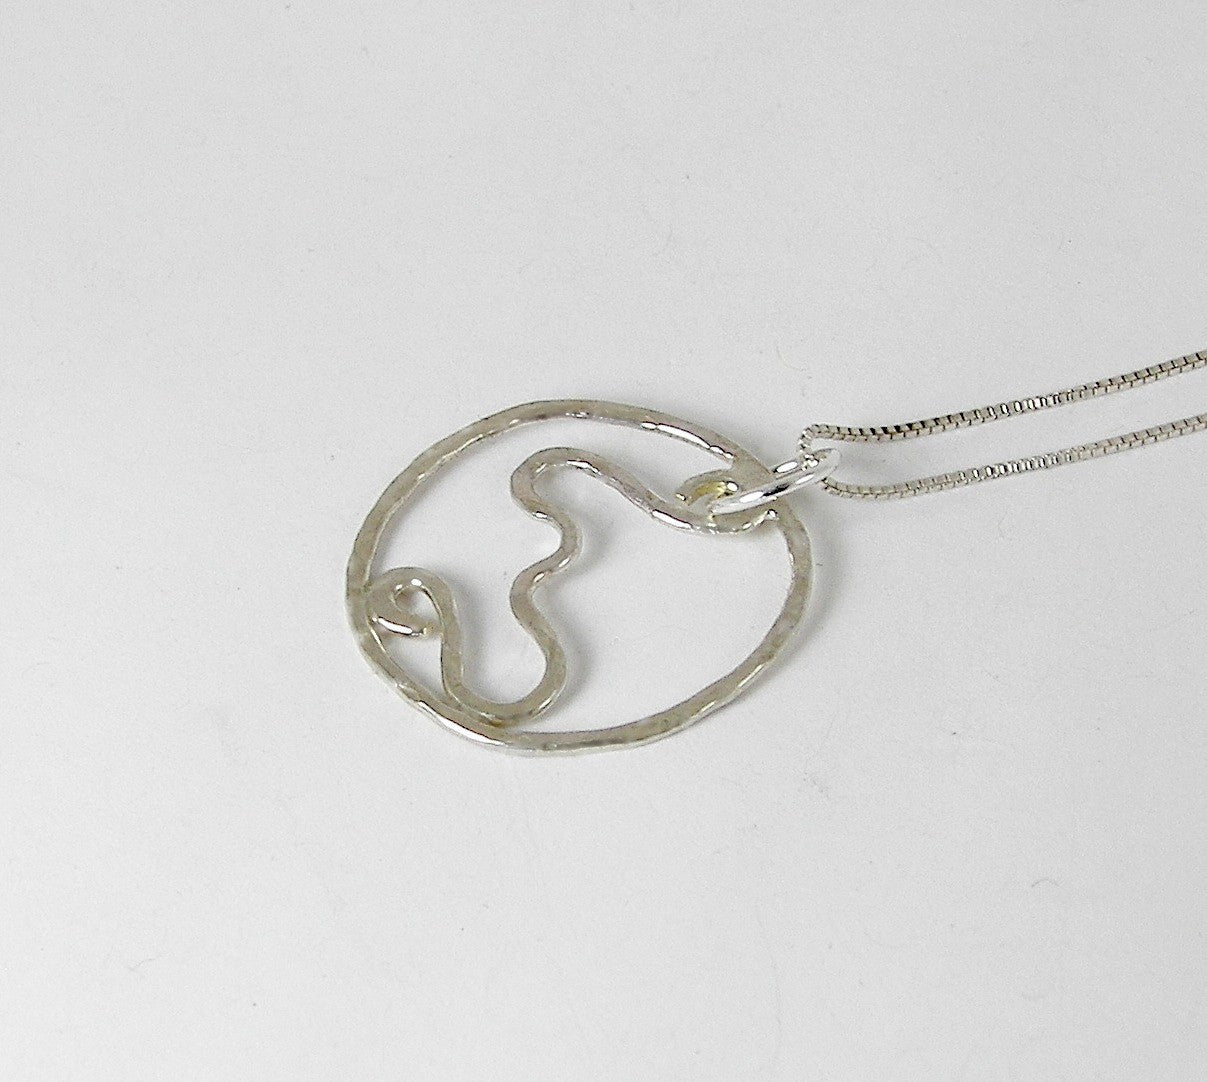 Circle Pendant Necklace, Squiggles Sterling Necklace, Circle Jewelry - Desert Shine Designs